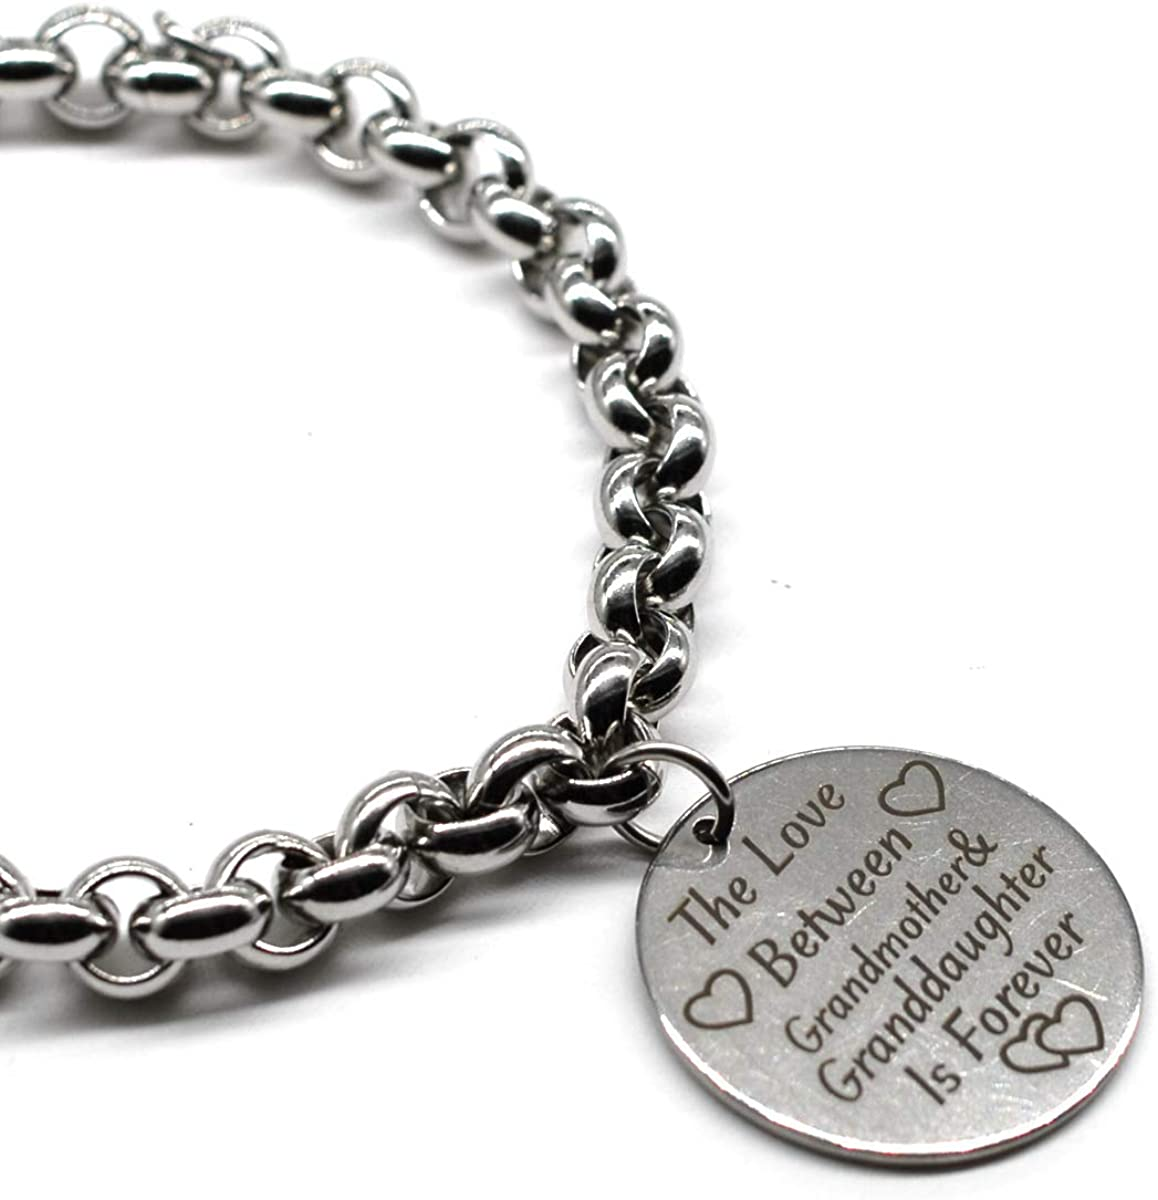 M&T 2015 Stainless Steel Charm Inspiration Jewelry, The Love Between Grandmother and Granddaughter is Forever, 20